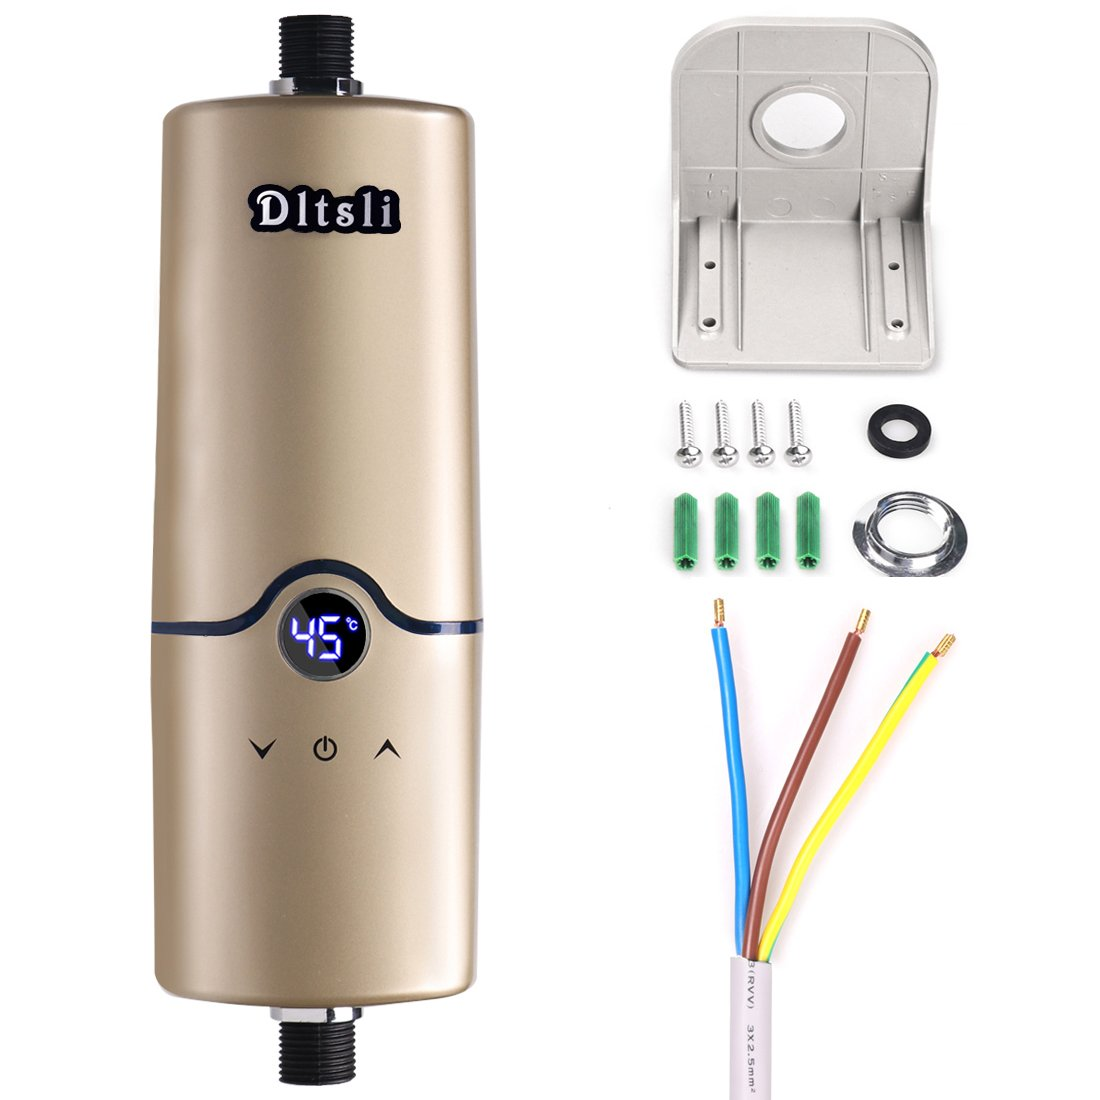 240V 4 Power Levels (5.5KW 5KW 4.5KW 3.5KW) Instant Electric Hot Tankless Water Heater for Bathroom Kitchen